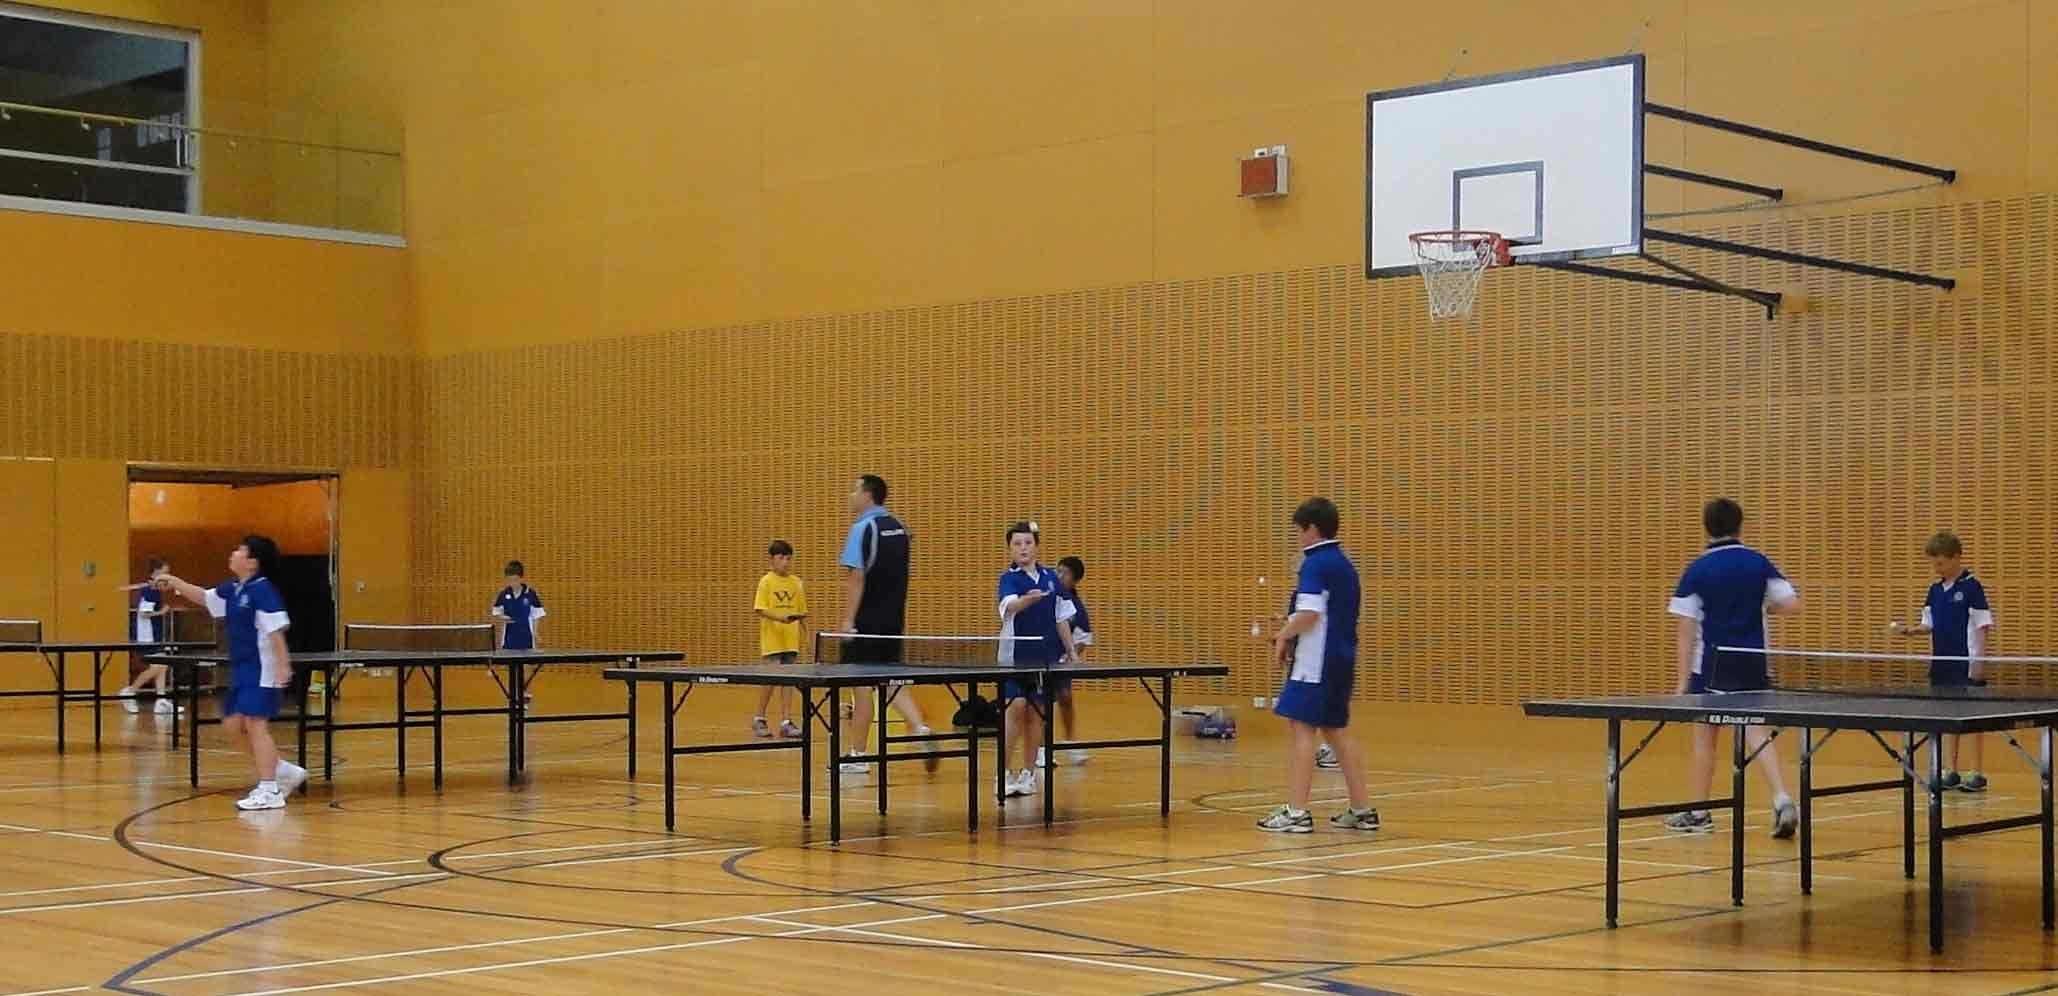 Saint-Kentigern-Boys'-School-Sports-Badminton.jpg